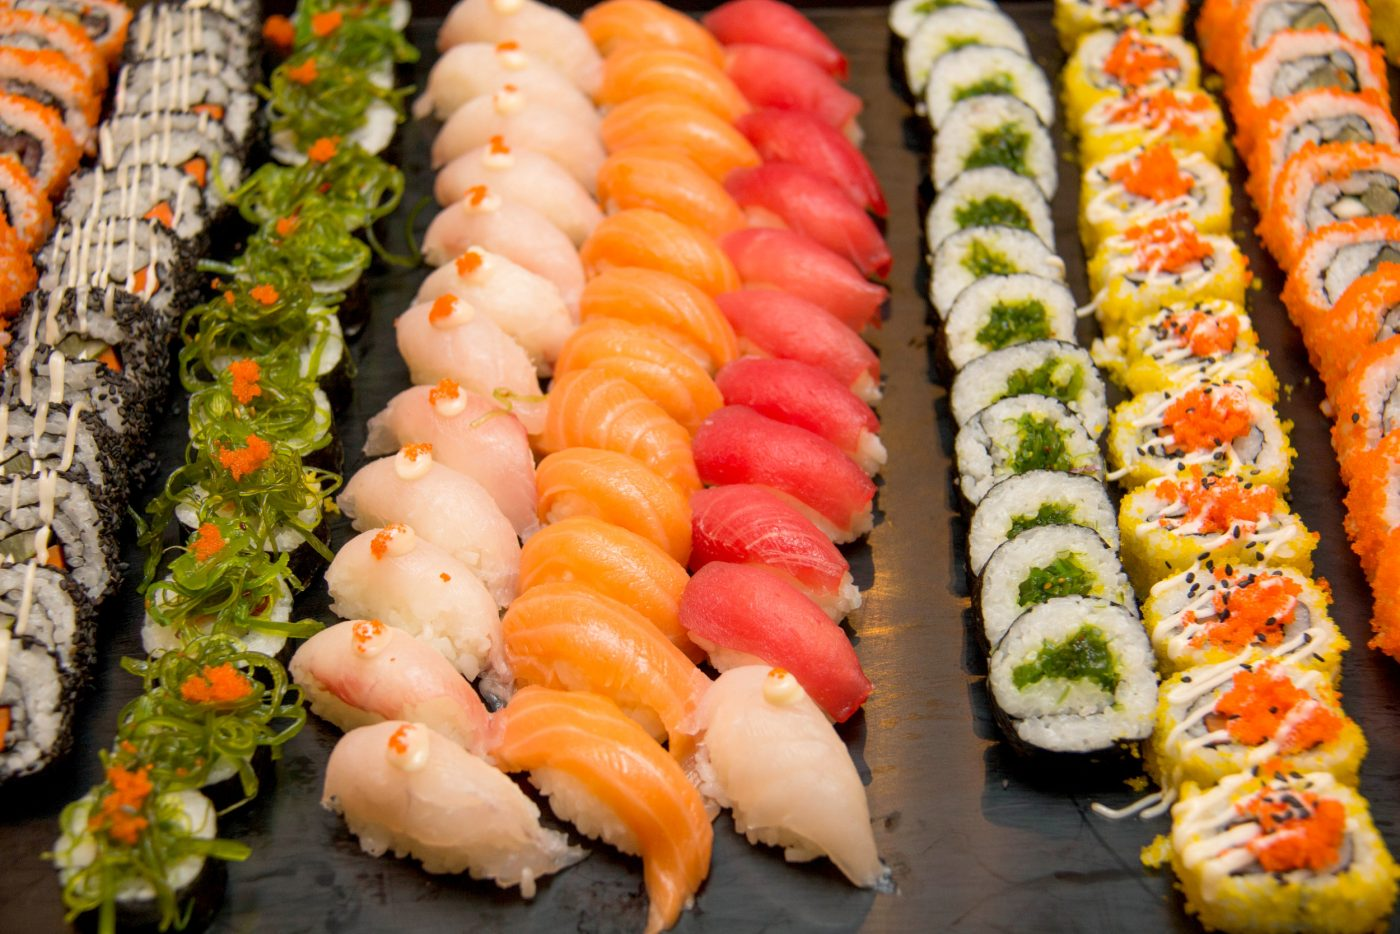 Il sushi made in Italy si chiama Zushi